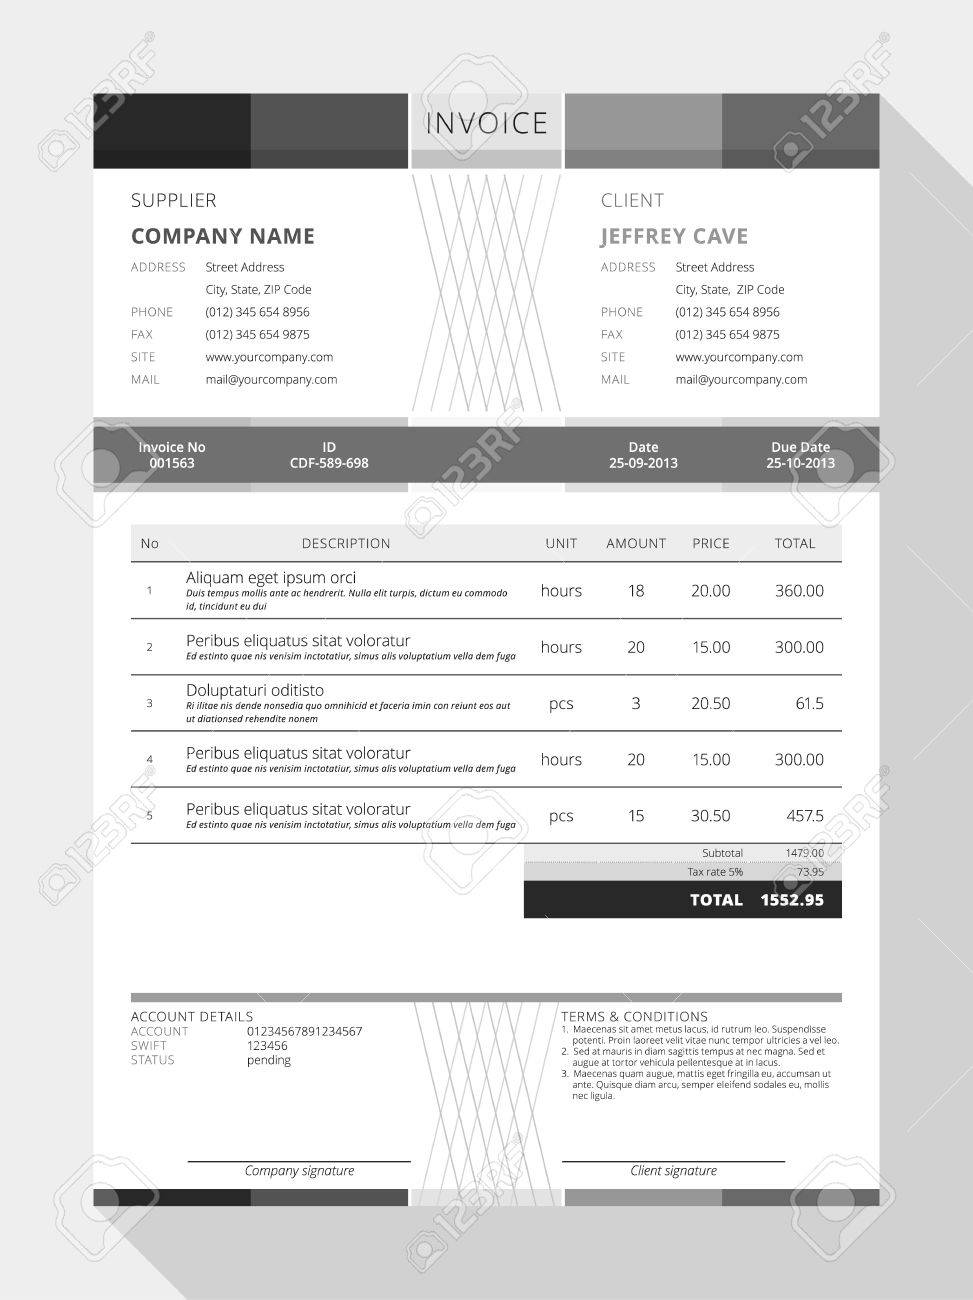 Soulfulpowerus  Pleasing Design An Invoice  Professional Graphic Design Invoice  With Licious Vector Customizable Invoice Form Template Design Vector   Design An Invoice With Awesome Invoice Edi Also Invoices Factoring In Addition Import Invoice And Invoice Payment Due As Well As Accrued Invoices Additionally Meaning Of Pro Forma Invoice From Happytomco With Soulfulpowerus  Licious Design An Invoice  Professional Graphic Design Invoice  With Awesome Vector Customizable Invoice Form Template Design Vector   Design An Invoice And Pleasing Invoice Edi Also Invoices Factoring In Addition Import Invoice From Happytomco